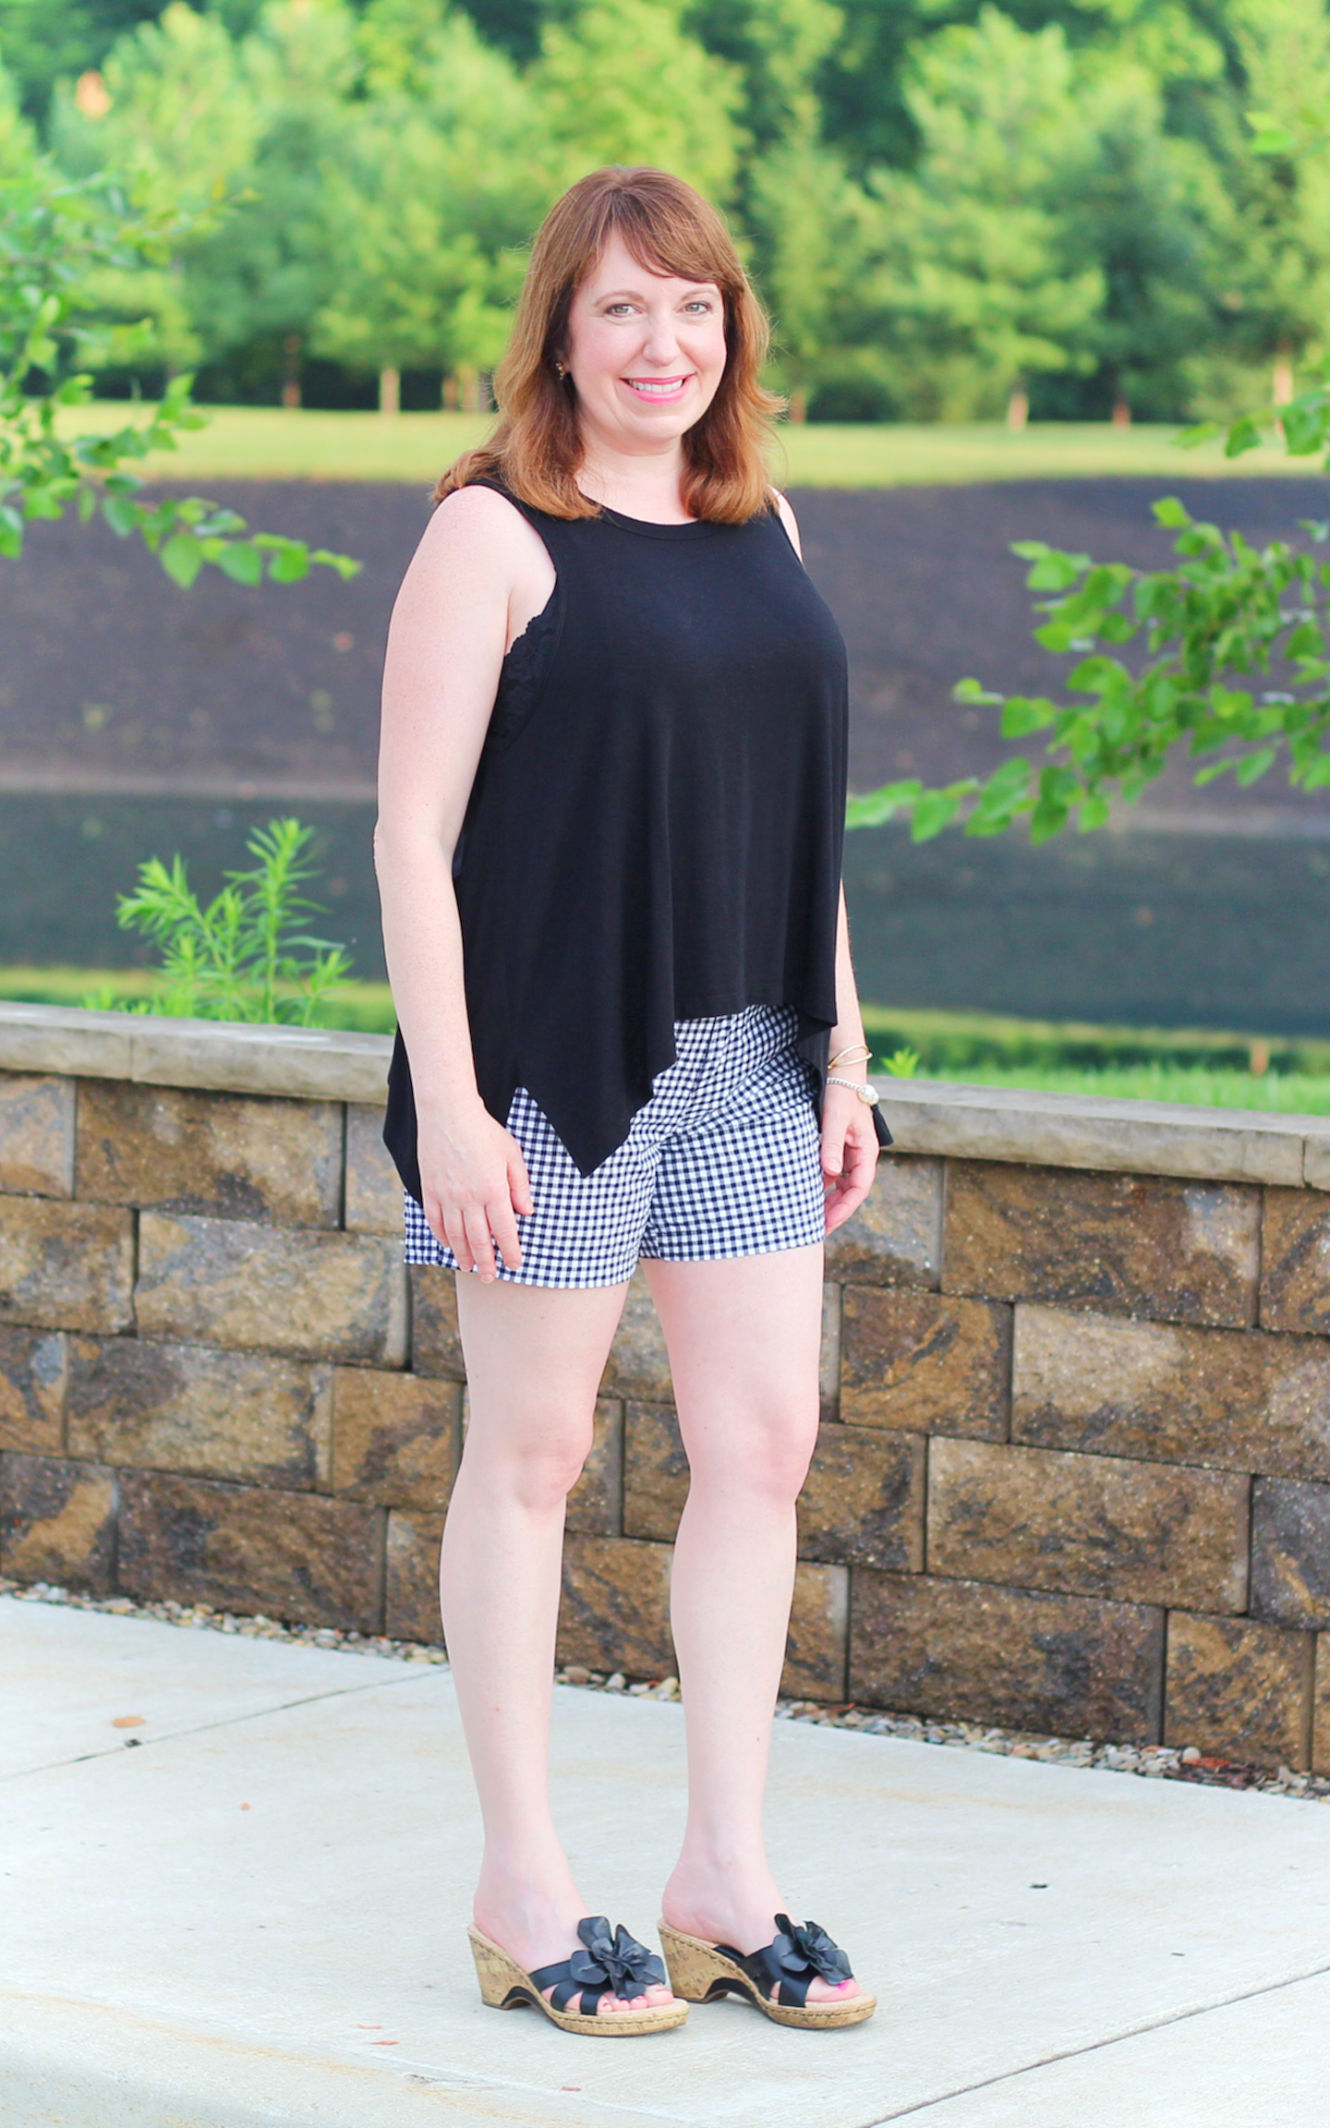 ac7979d5dad43b Black And White Shorts Outfit With A Bralette  fashionover40   fashionforwomenover40  summeroutfit  bralette